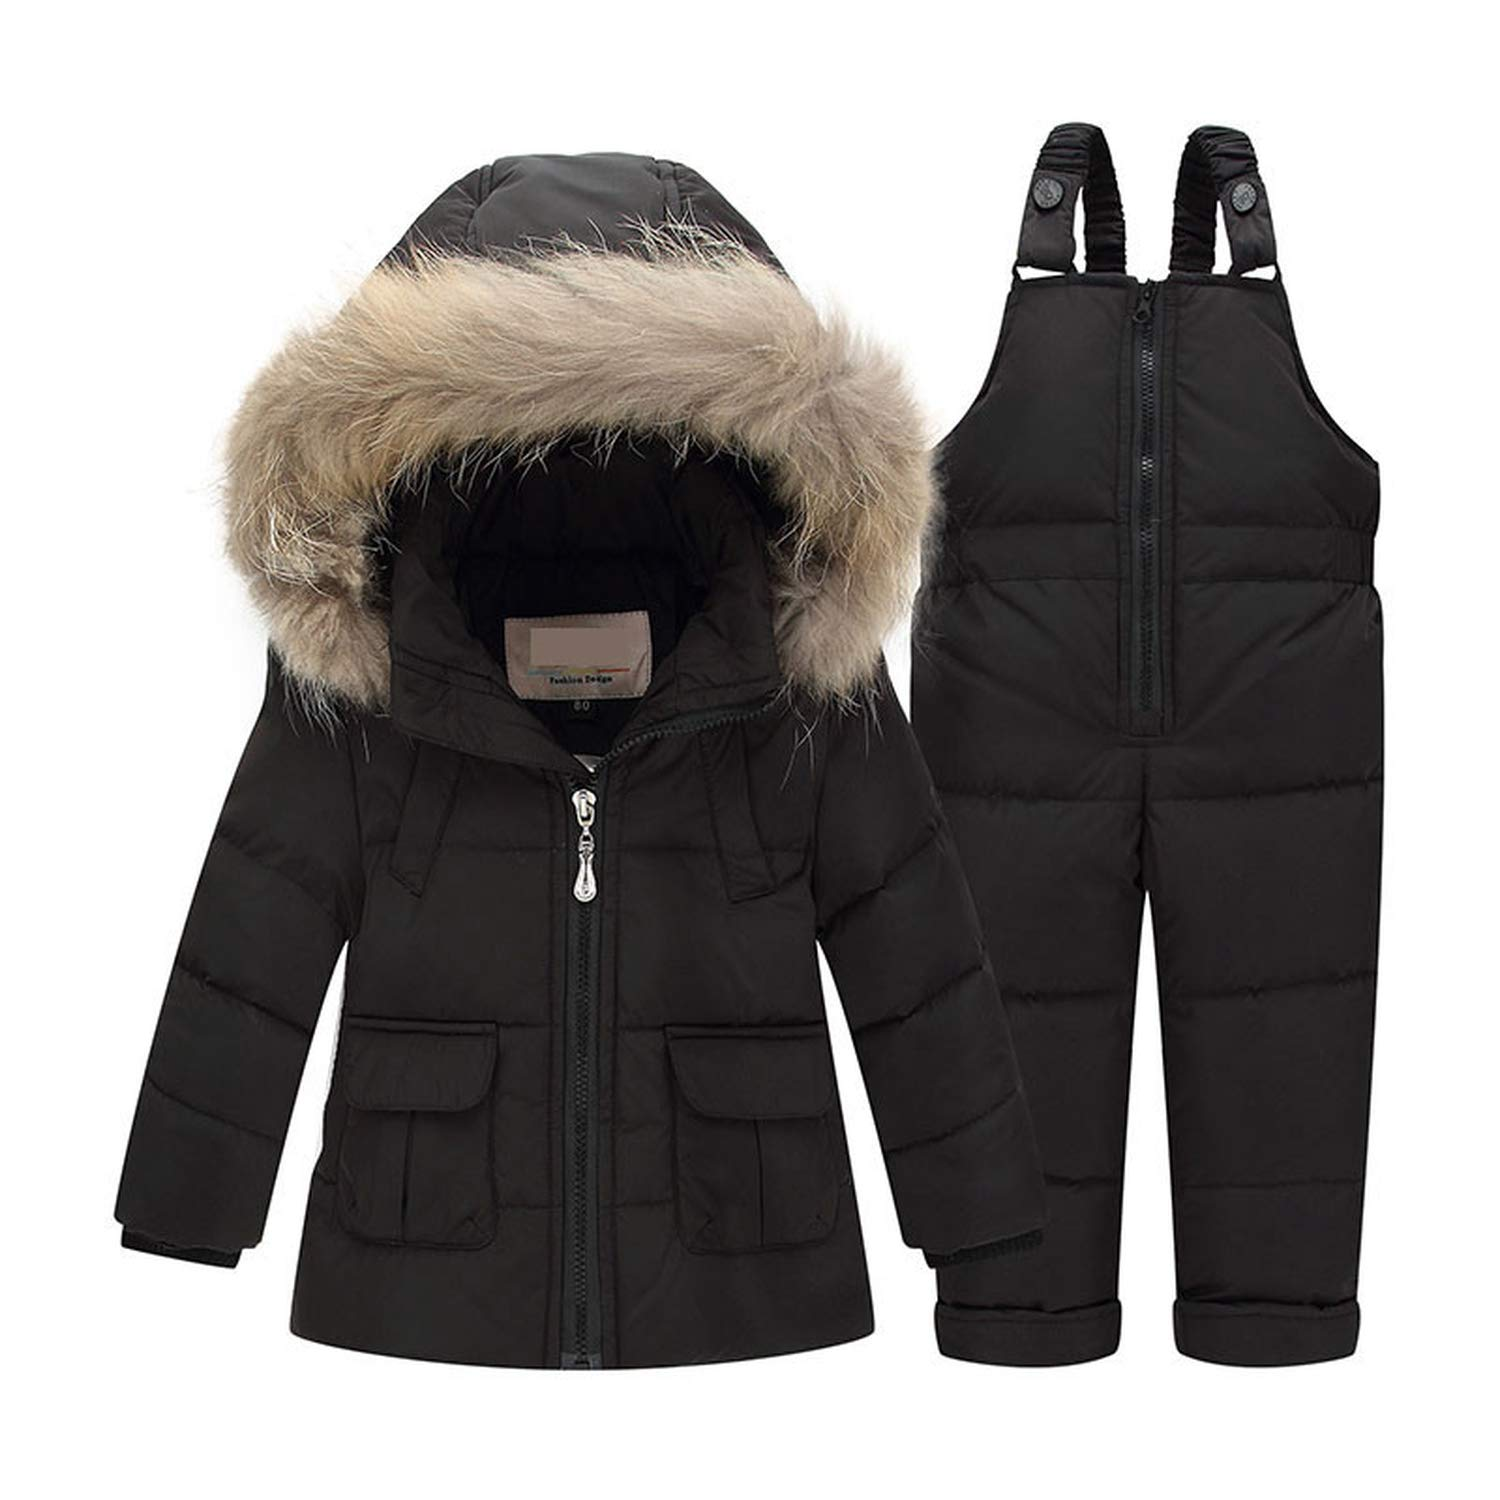 31ab8a6e861b Amazon.com  Mandaartins Winter Suits for Boys Girls Ski Suit ...